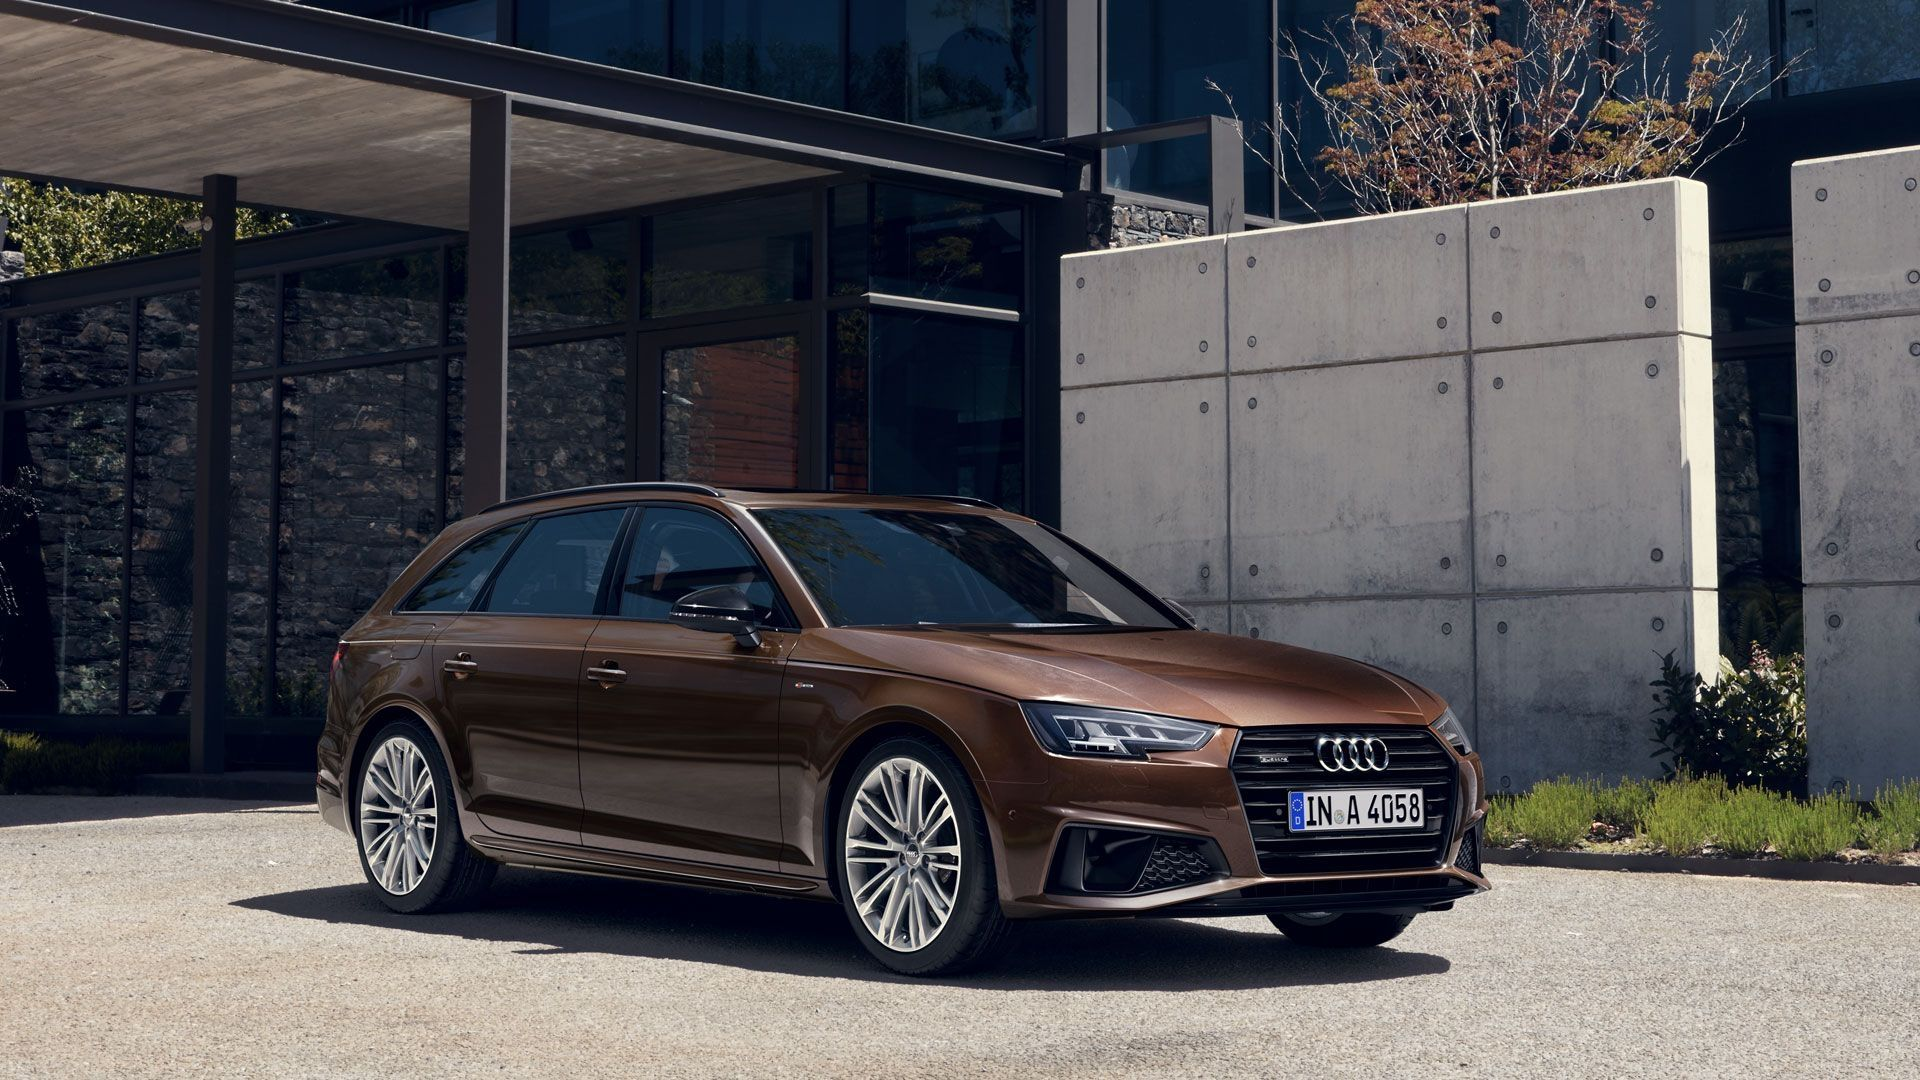 The 2019 Audi A4 Sedan Specs And Review Audi A4 Audi Small Luxury Cars